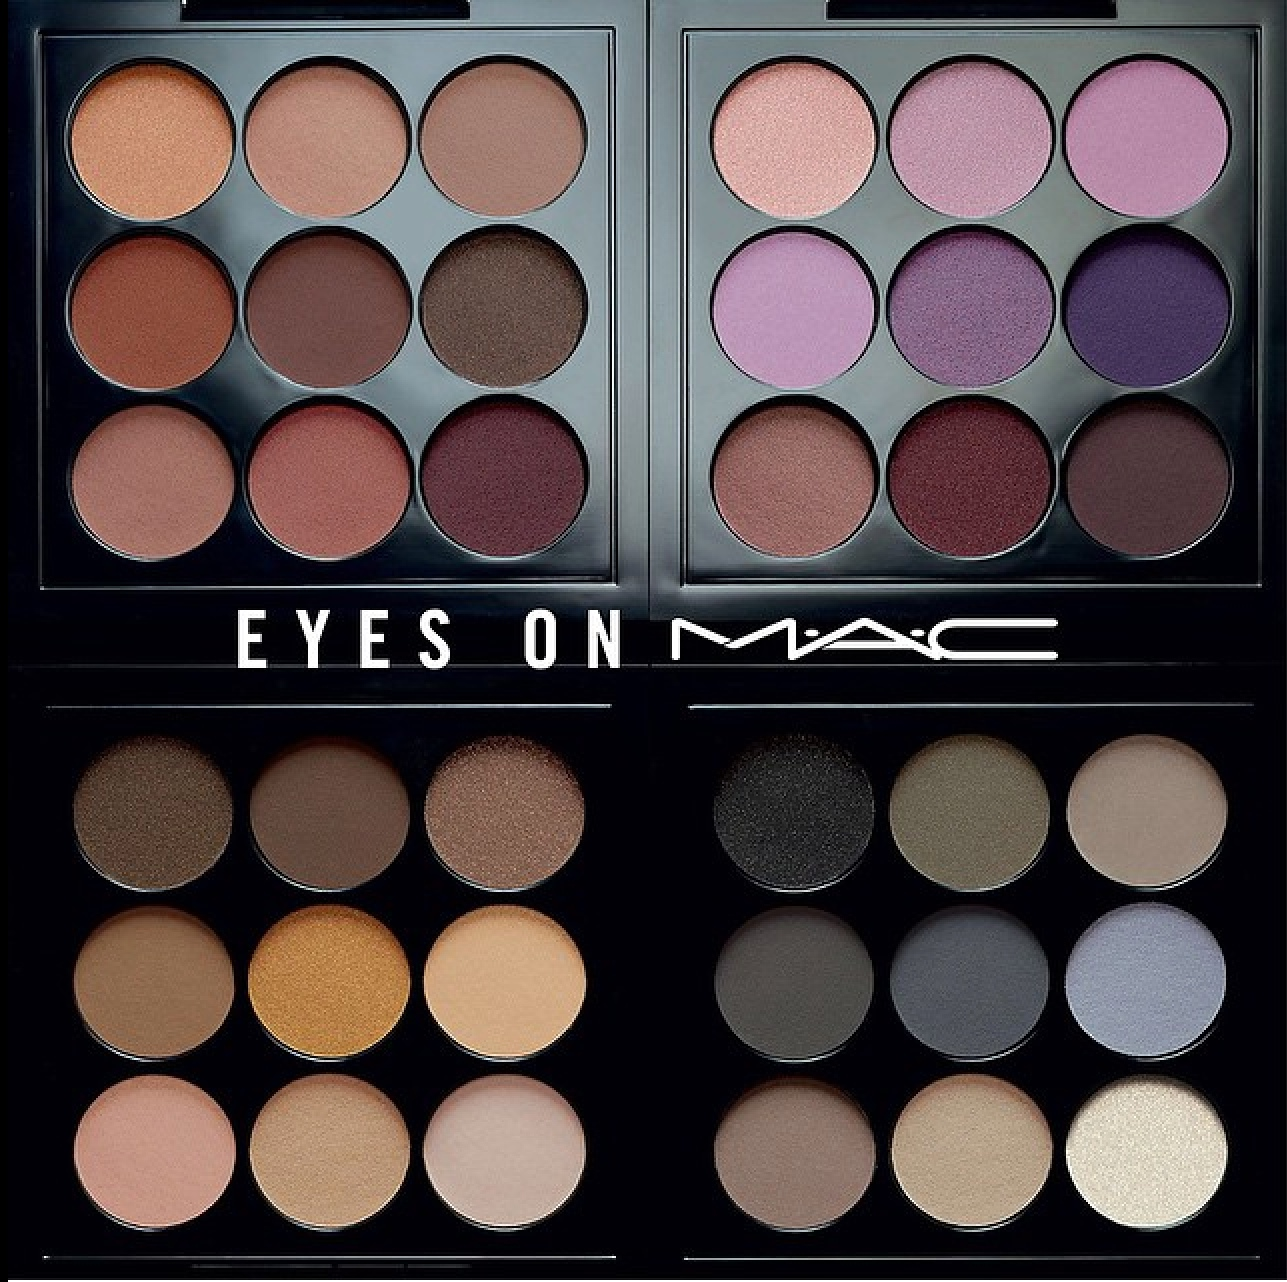 Diary of a Trendaholic : Eyes on MAC Eye Shadow Palette Review